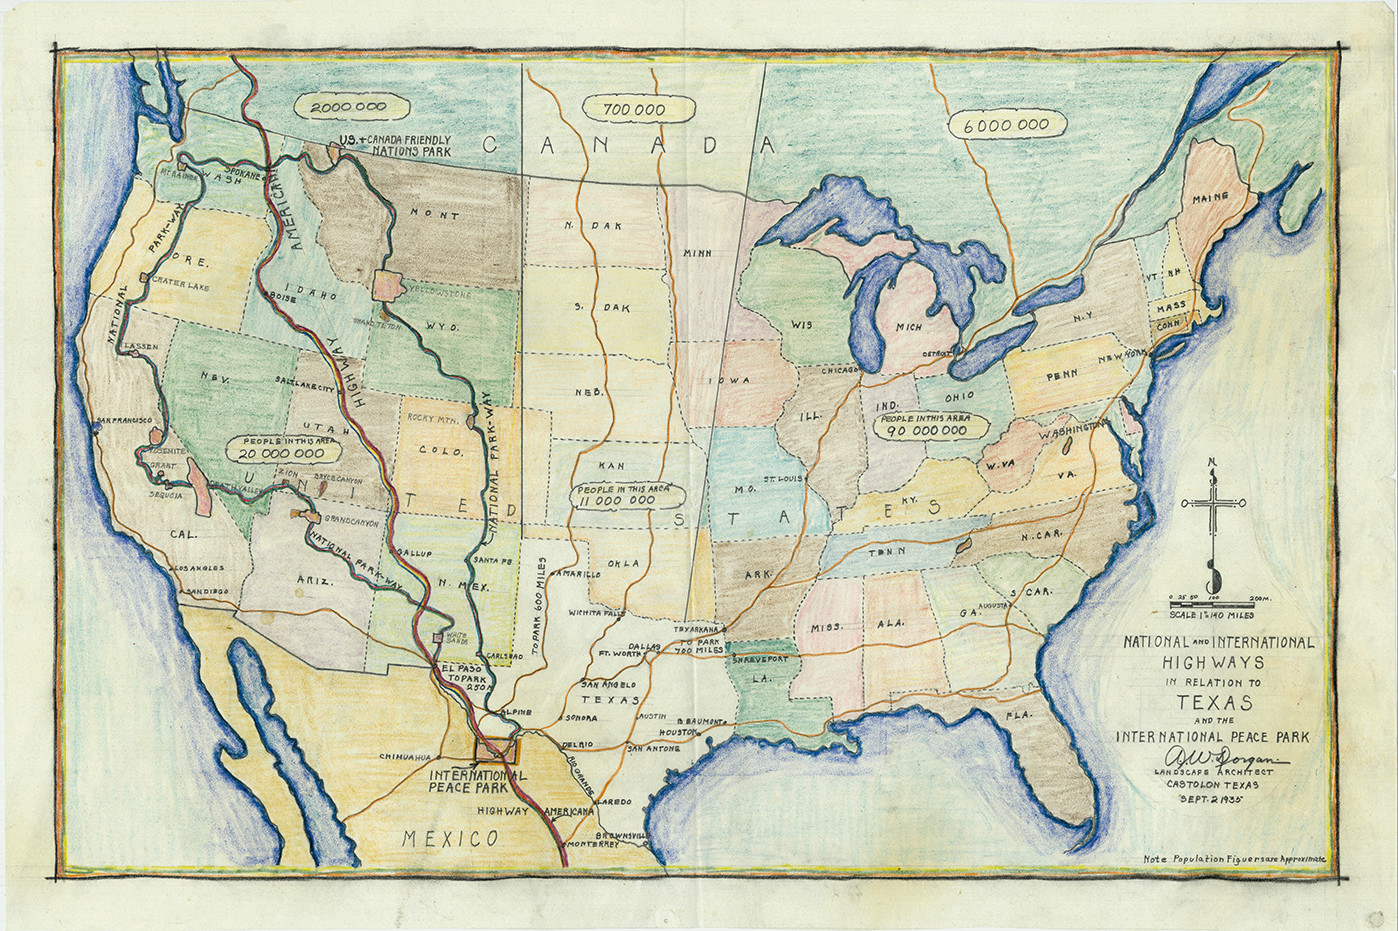 a 1935 map of the united states by albert w dorgan showing proposed highways routes leading to texas and mexico image courtesy national archives